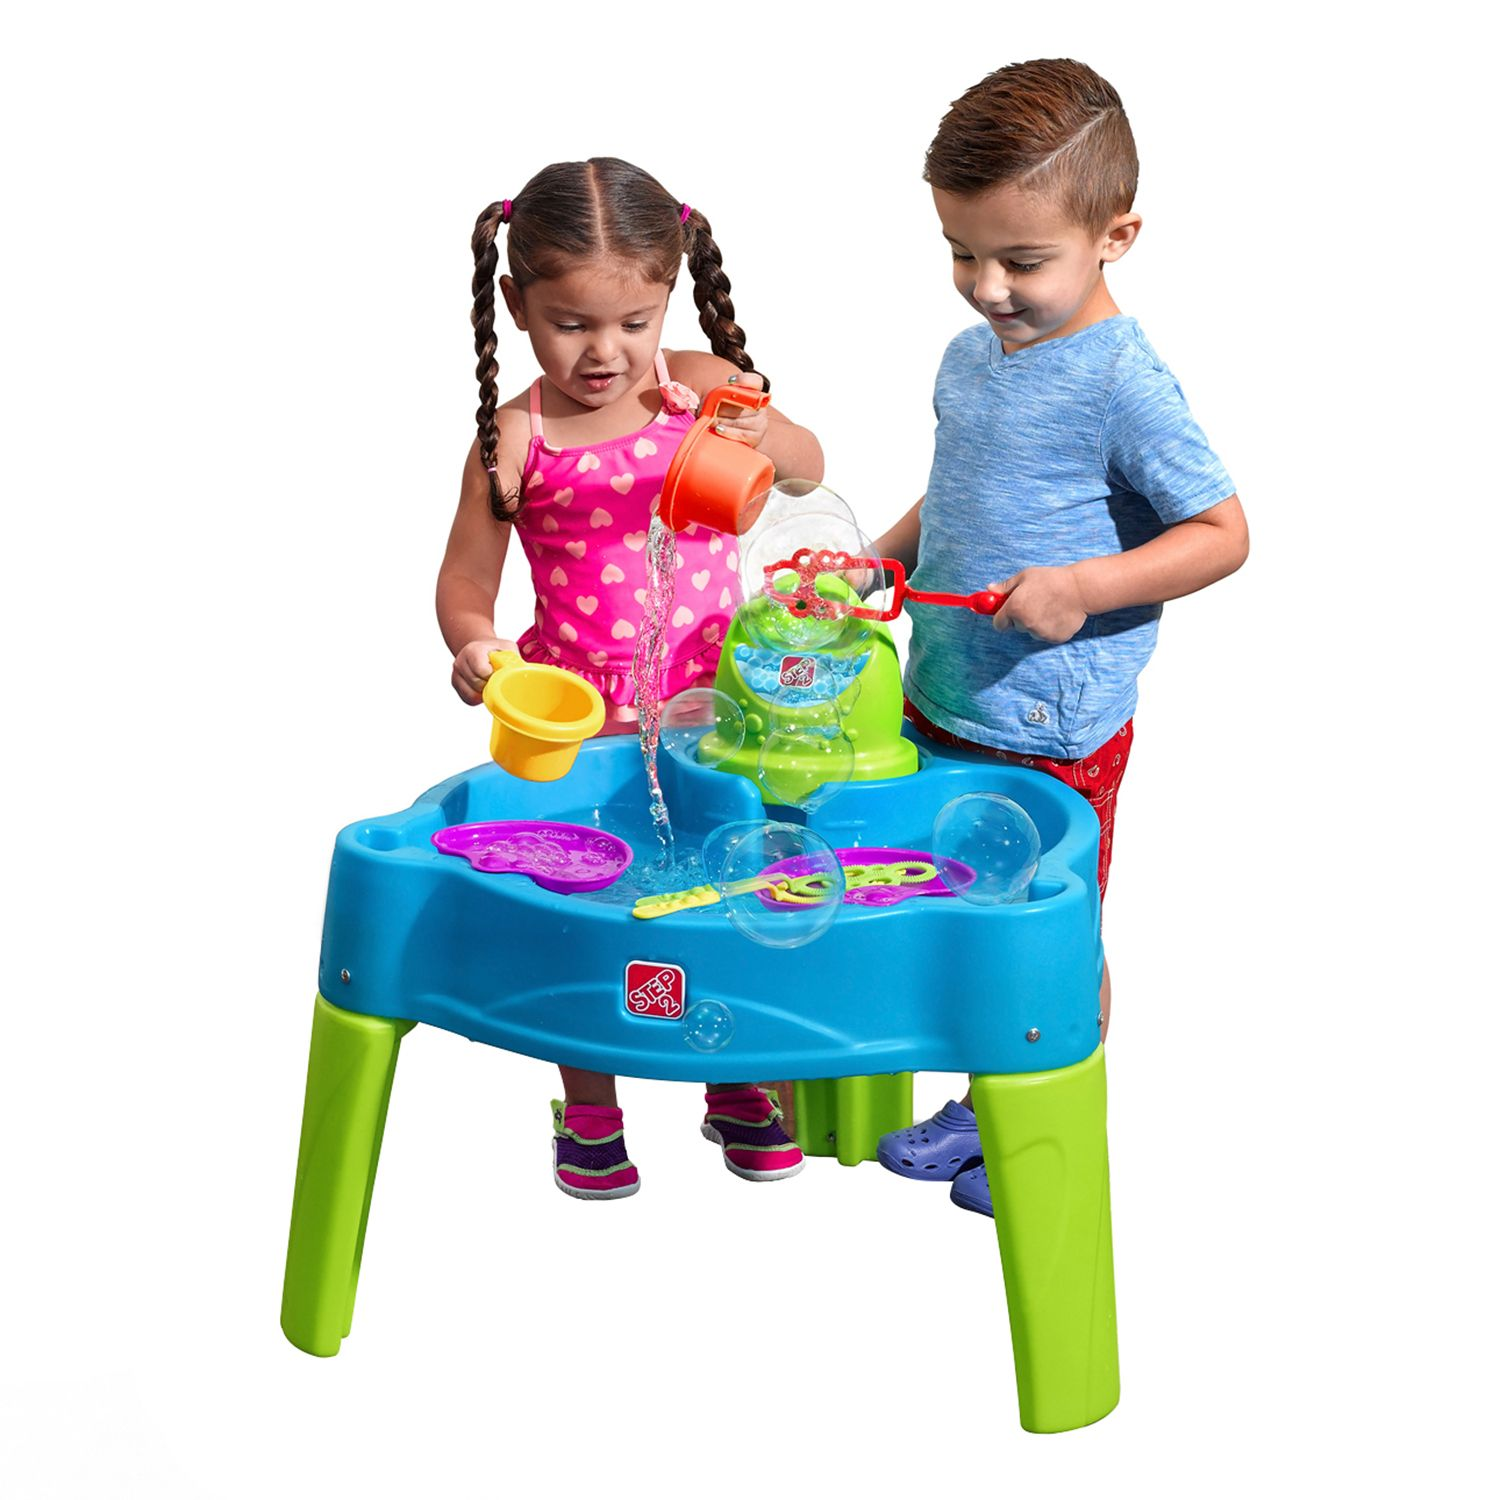 Step2 Other Toys Toys | Kohl\'s